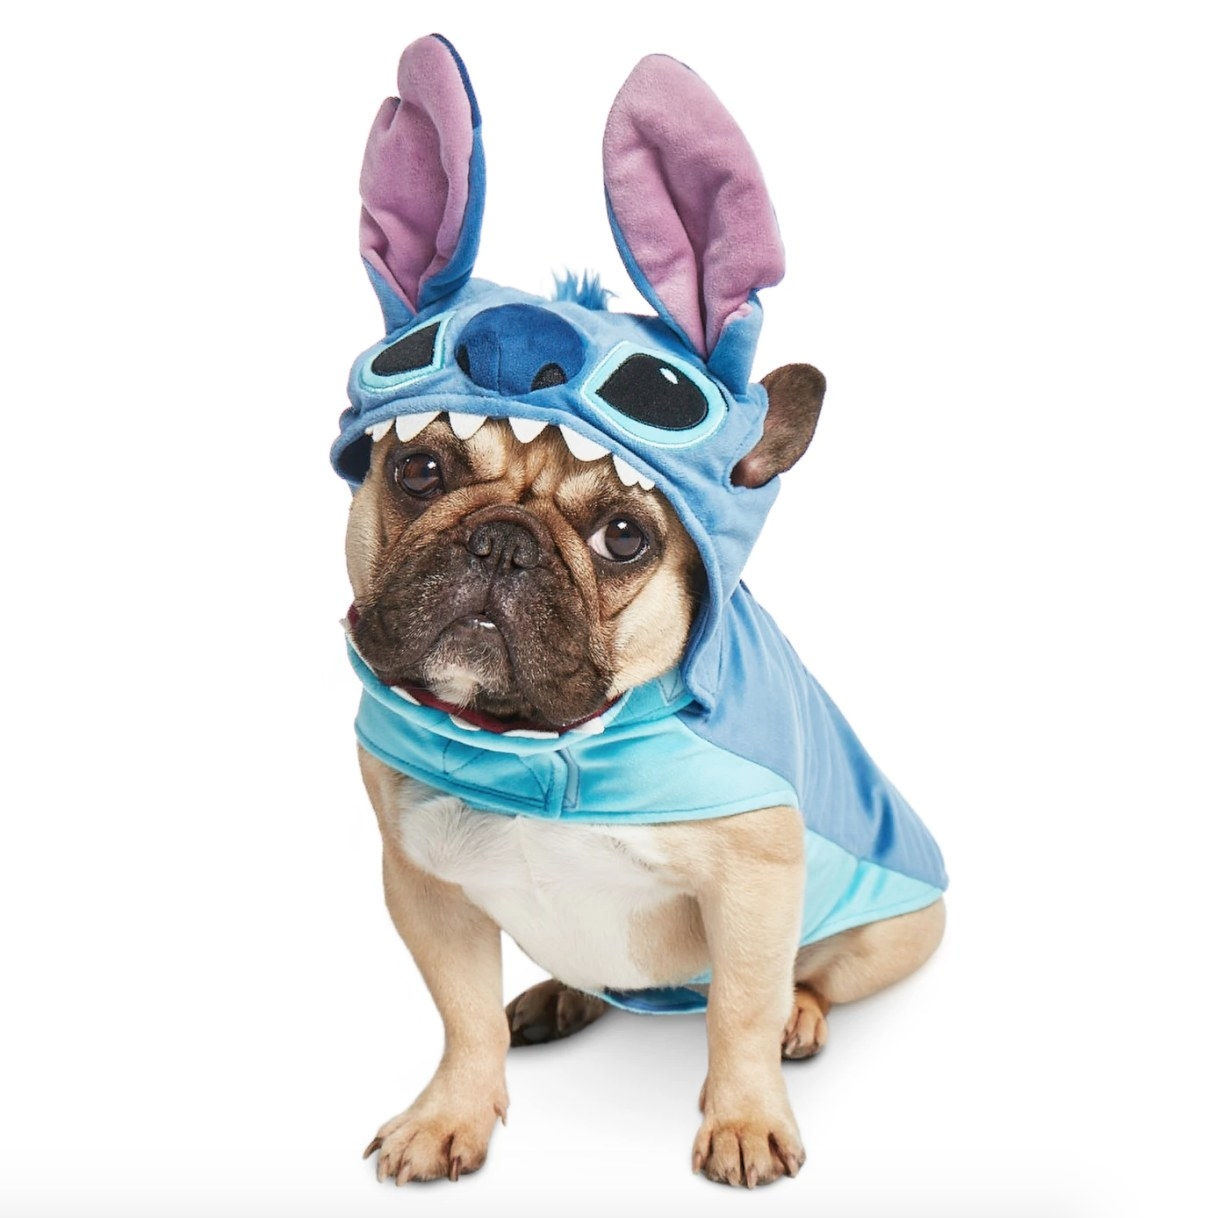 blue Stitch dog costume including ears and eyes